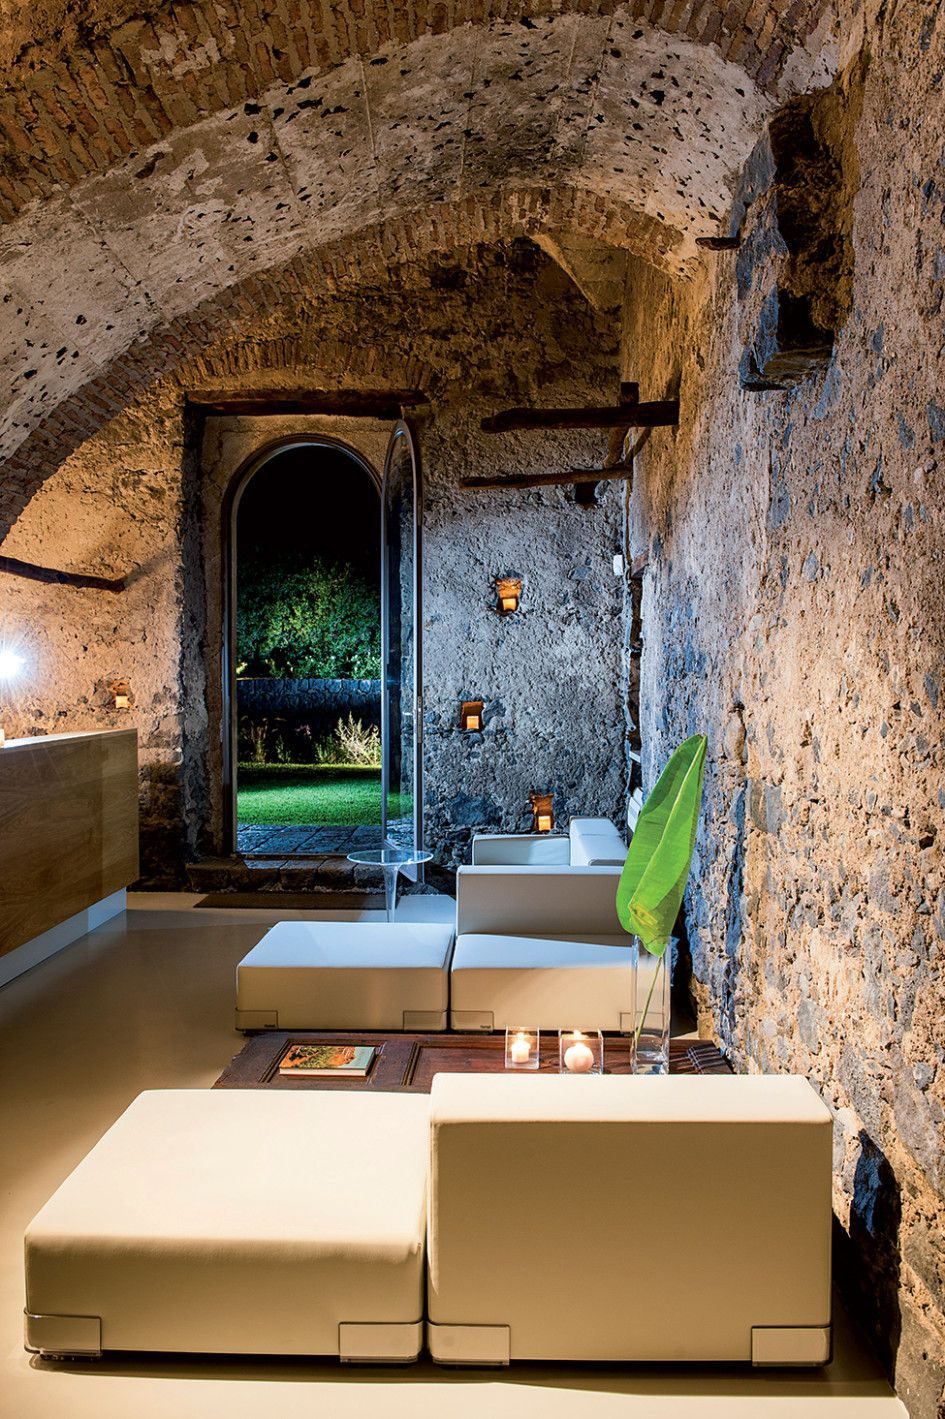 Architecture, Interesting Modern Zash Country Boutique Hotel Called Sicily Featuring Interior Design By Italian Architect Antonio Iraci With White Sofa: Chic Eclectic Home Decor with Original Design and Modern Furniture